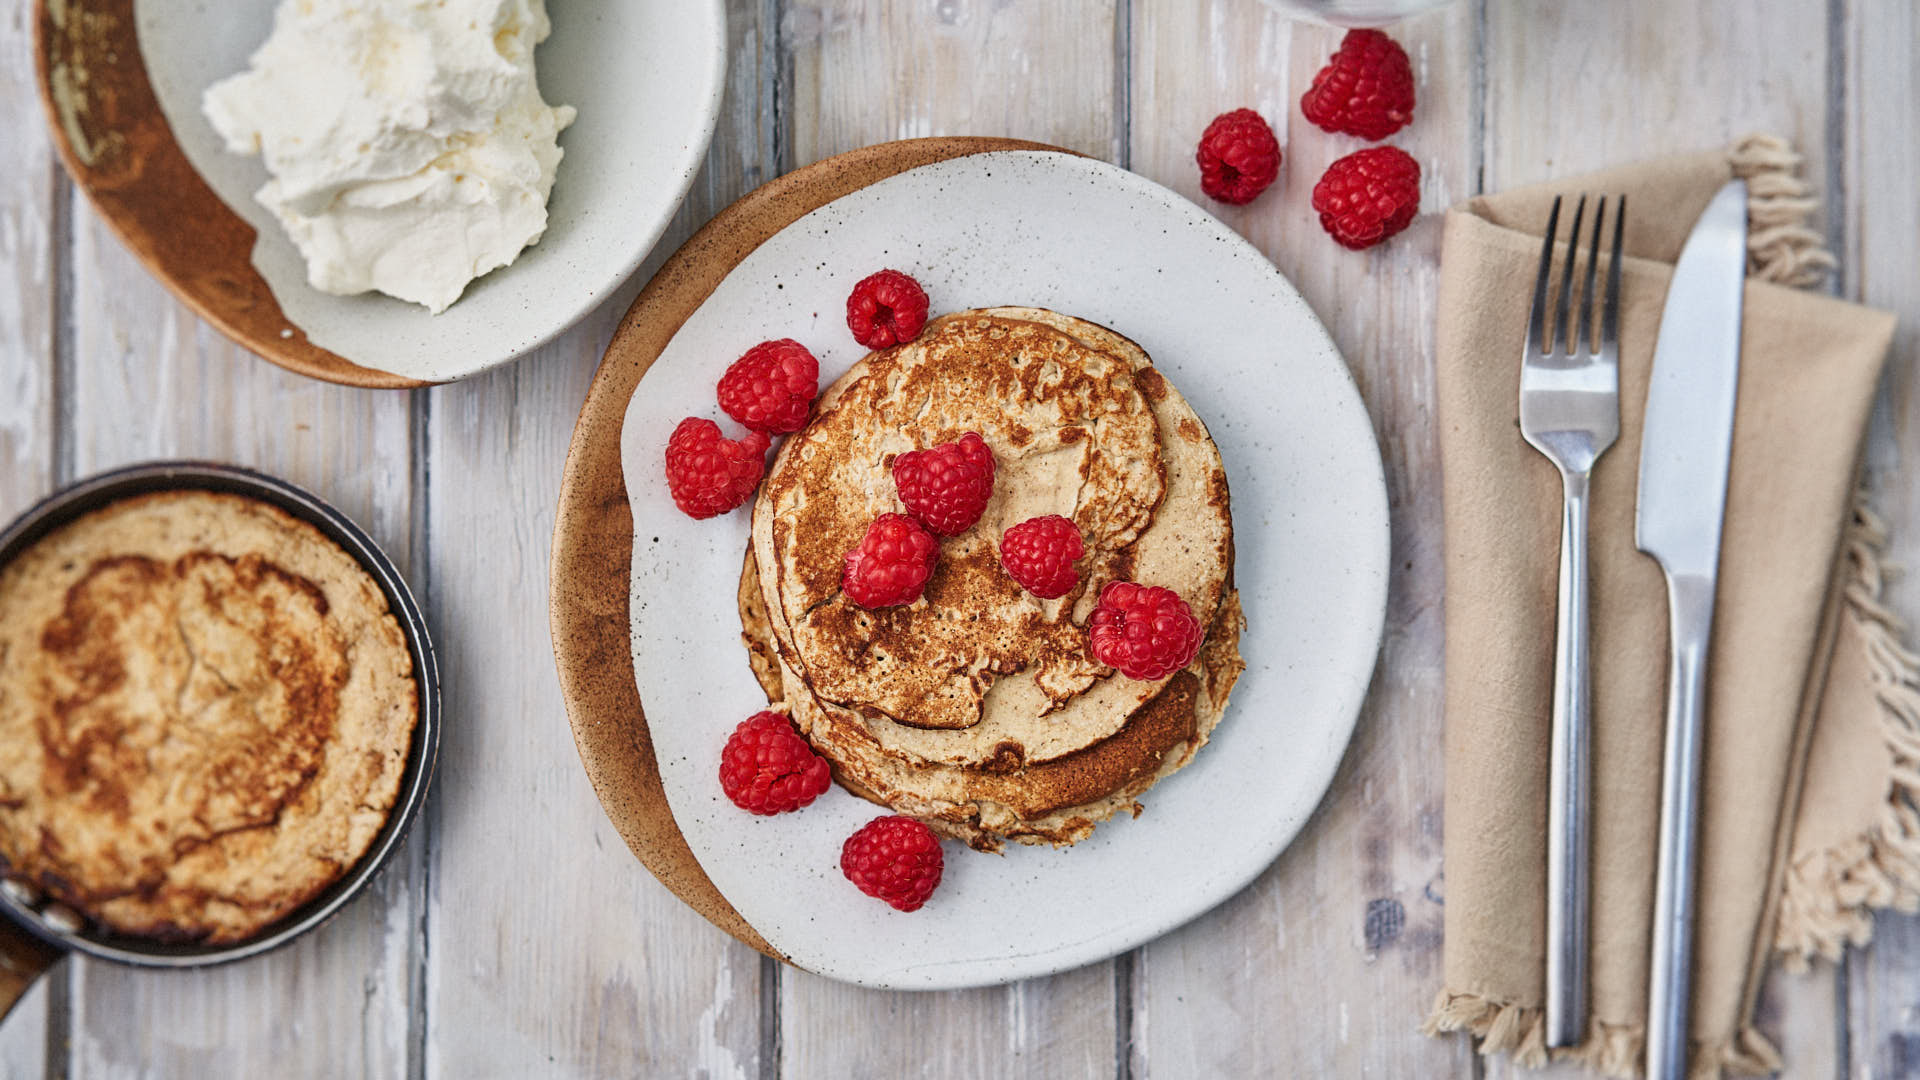 Low Carb High Fat Breakfast Meal. Pancakes. Bowl of whipped double cream. 14 raspberries scattered over pancakes. On wooden table. Cutlery visible to side. Small frying pan to left side.